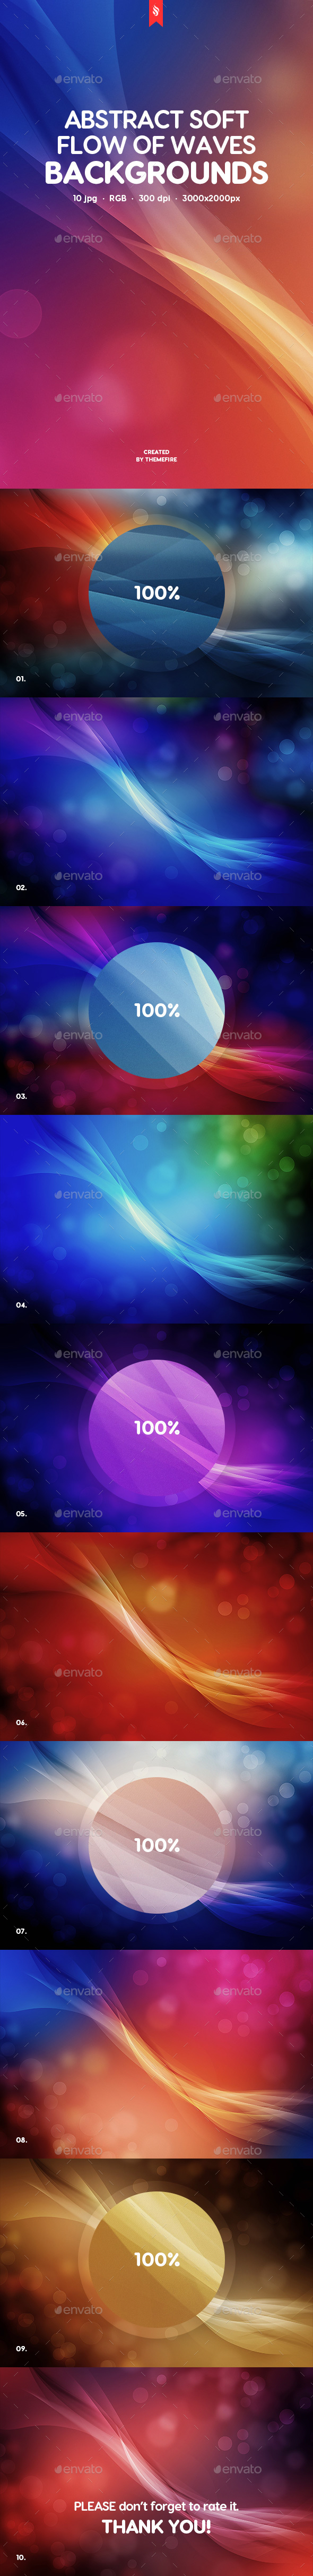 Soft Flow of Waves Backgrounds - Abstract Backgrounds